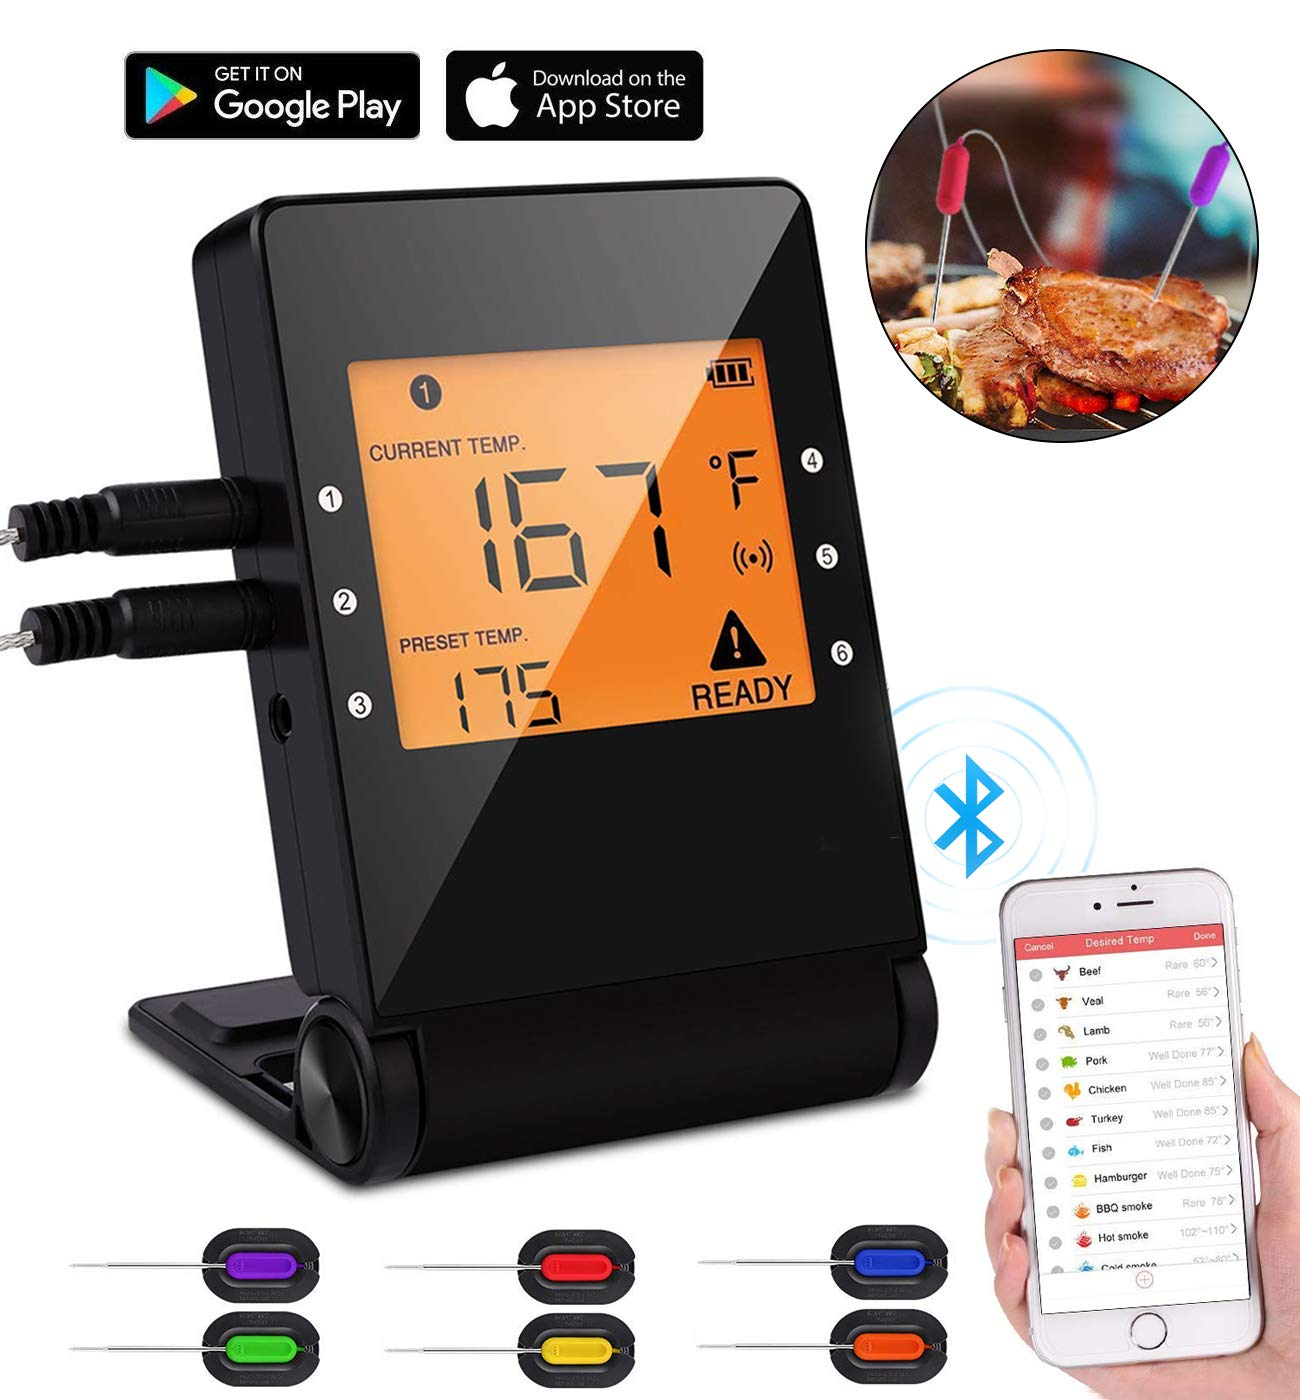 Digital Bluetooth Meat Thermometer,Wireless Remote Cooking Food Grill Thermometer with 6 Stainless Steel Probes for instant read BBQ Grilling, Kitchen Cooking and Smokers Thermometer by Wiw